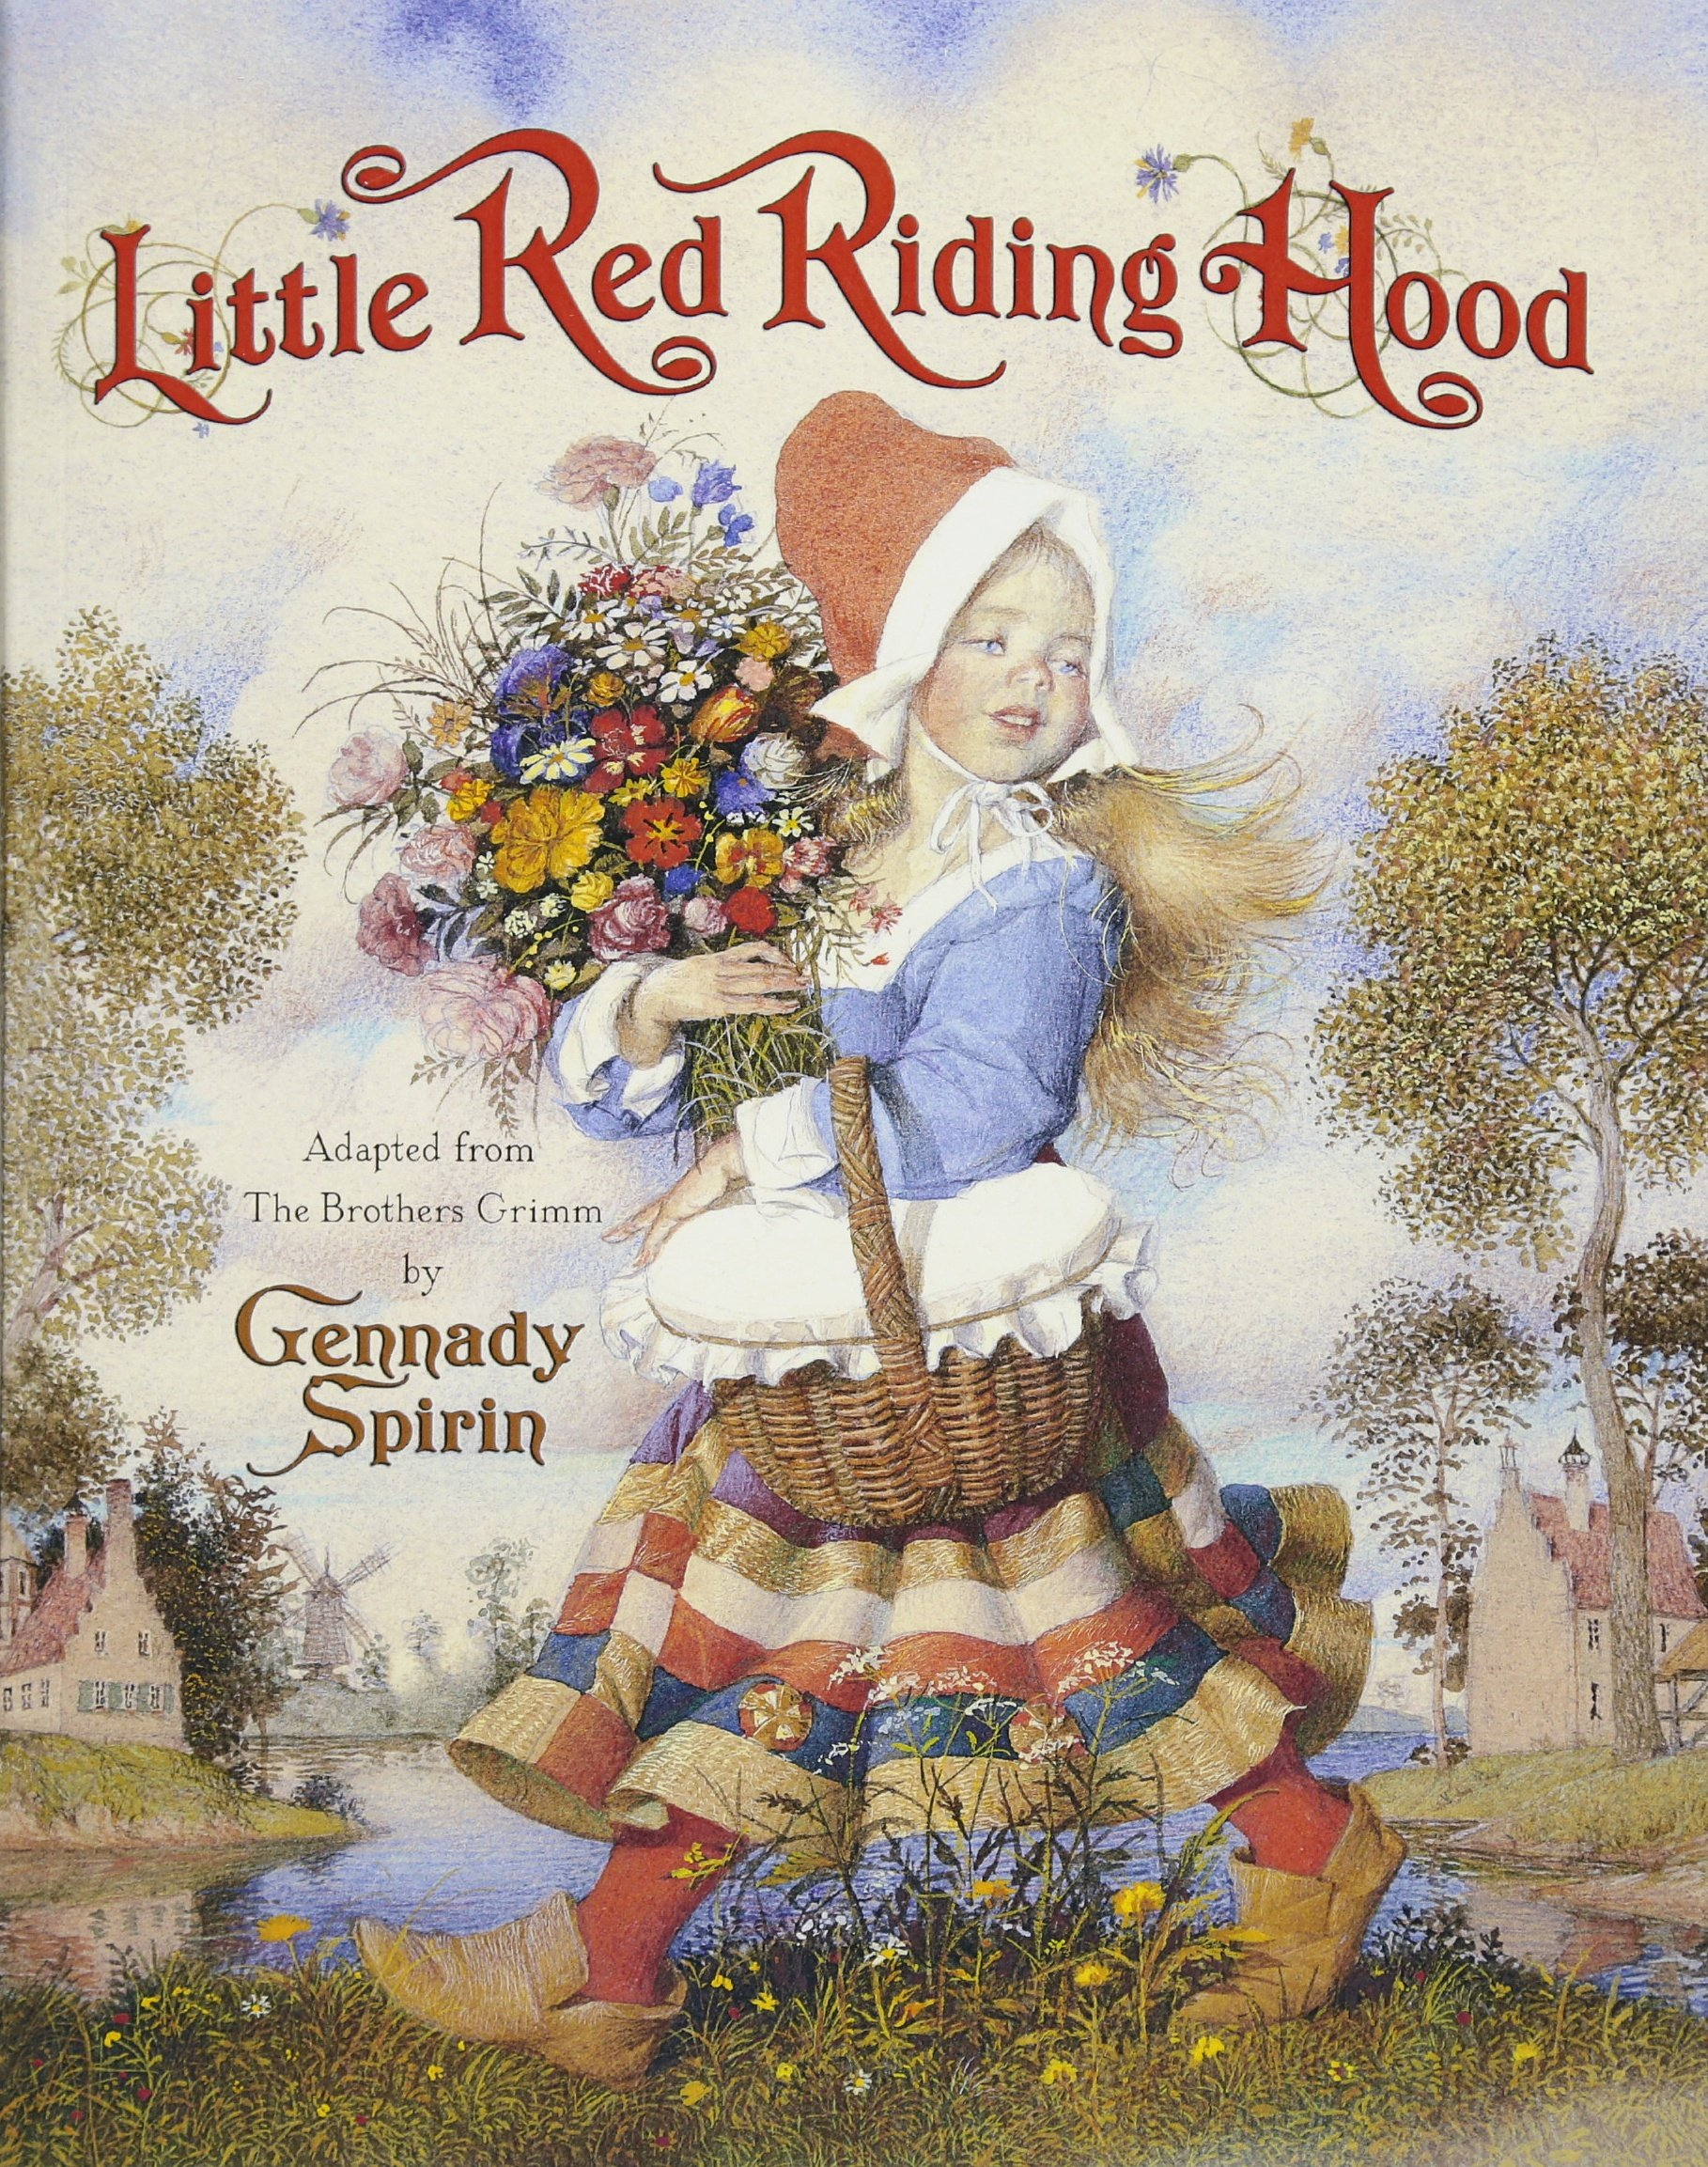 Little Red Riding Hood Spirin Gennady 9781477810477 Amazon Com